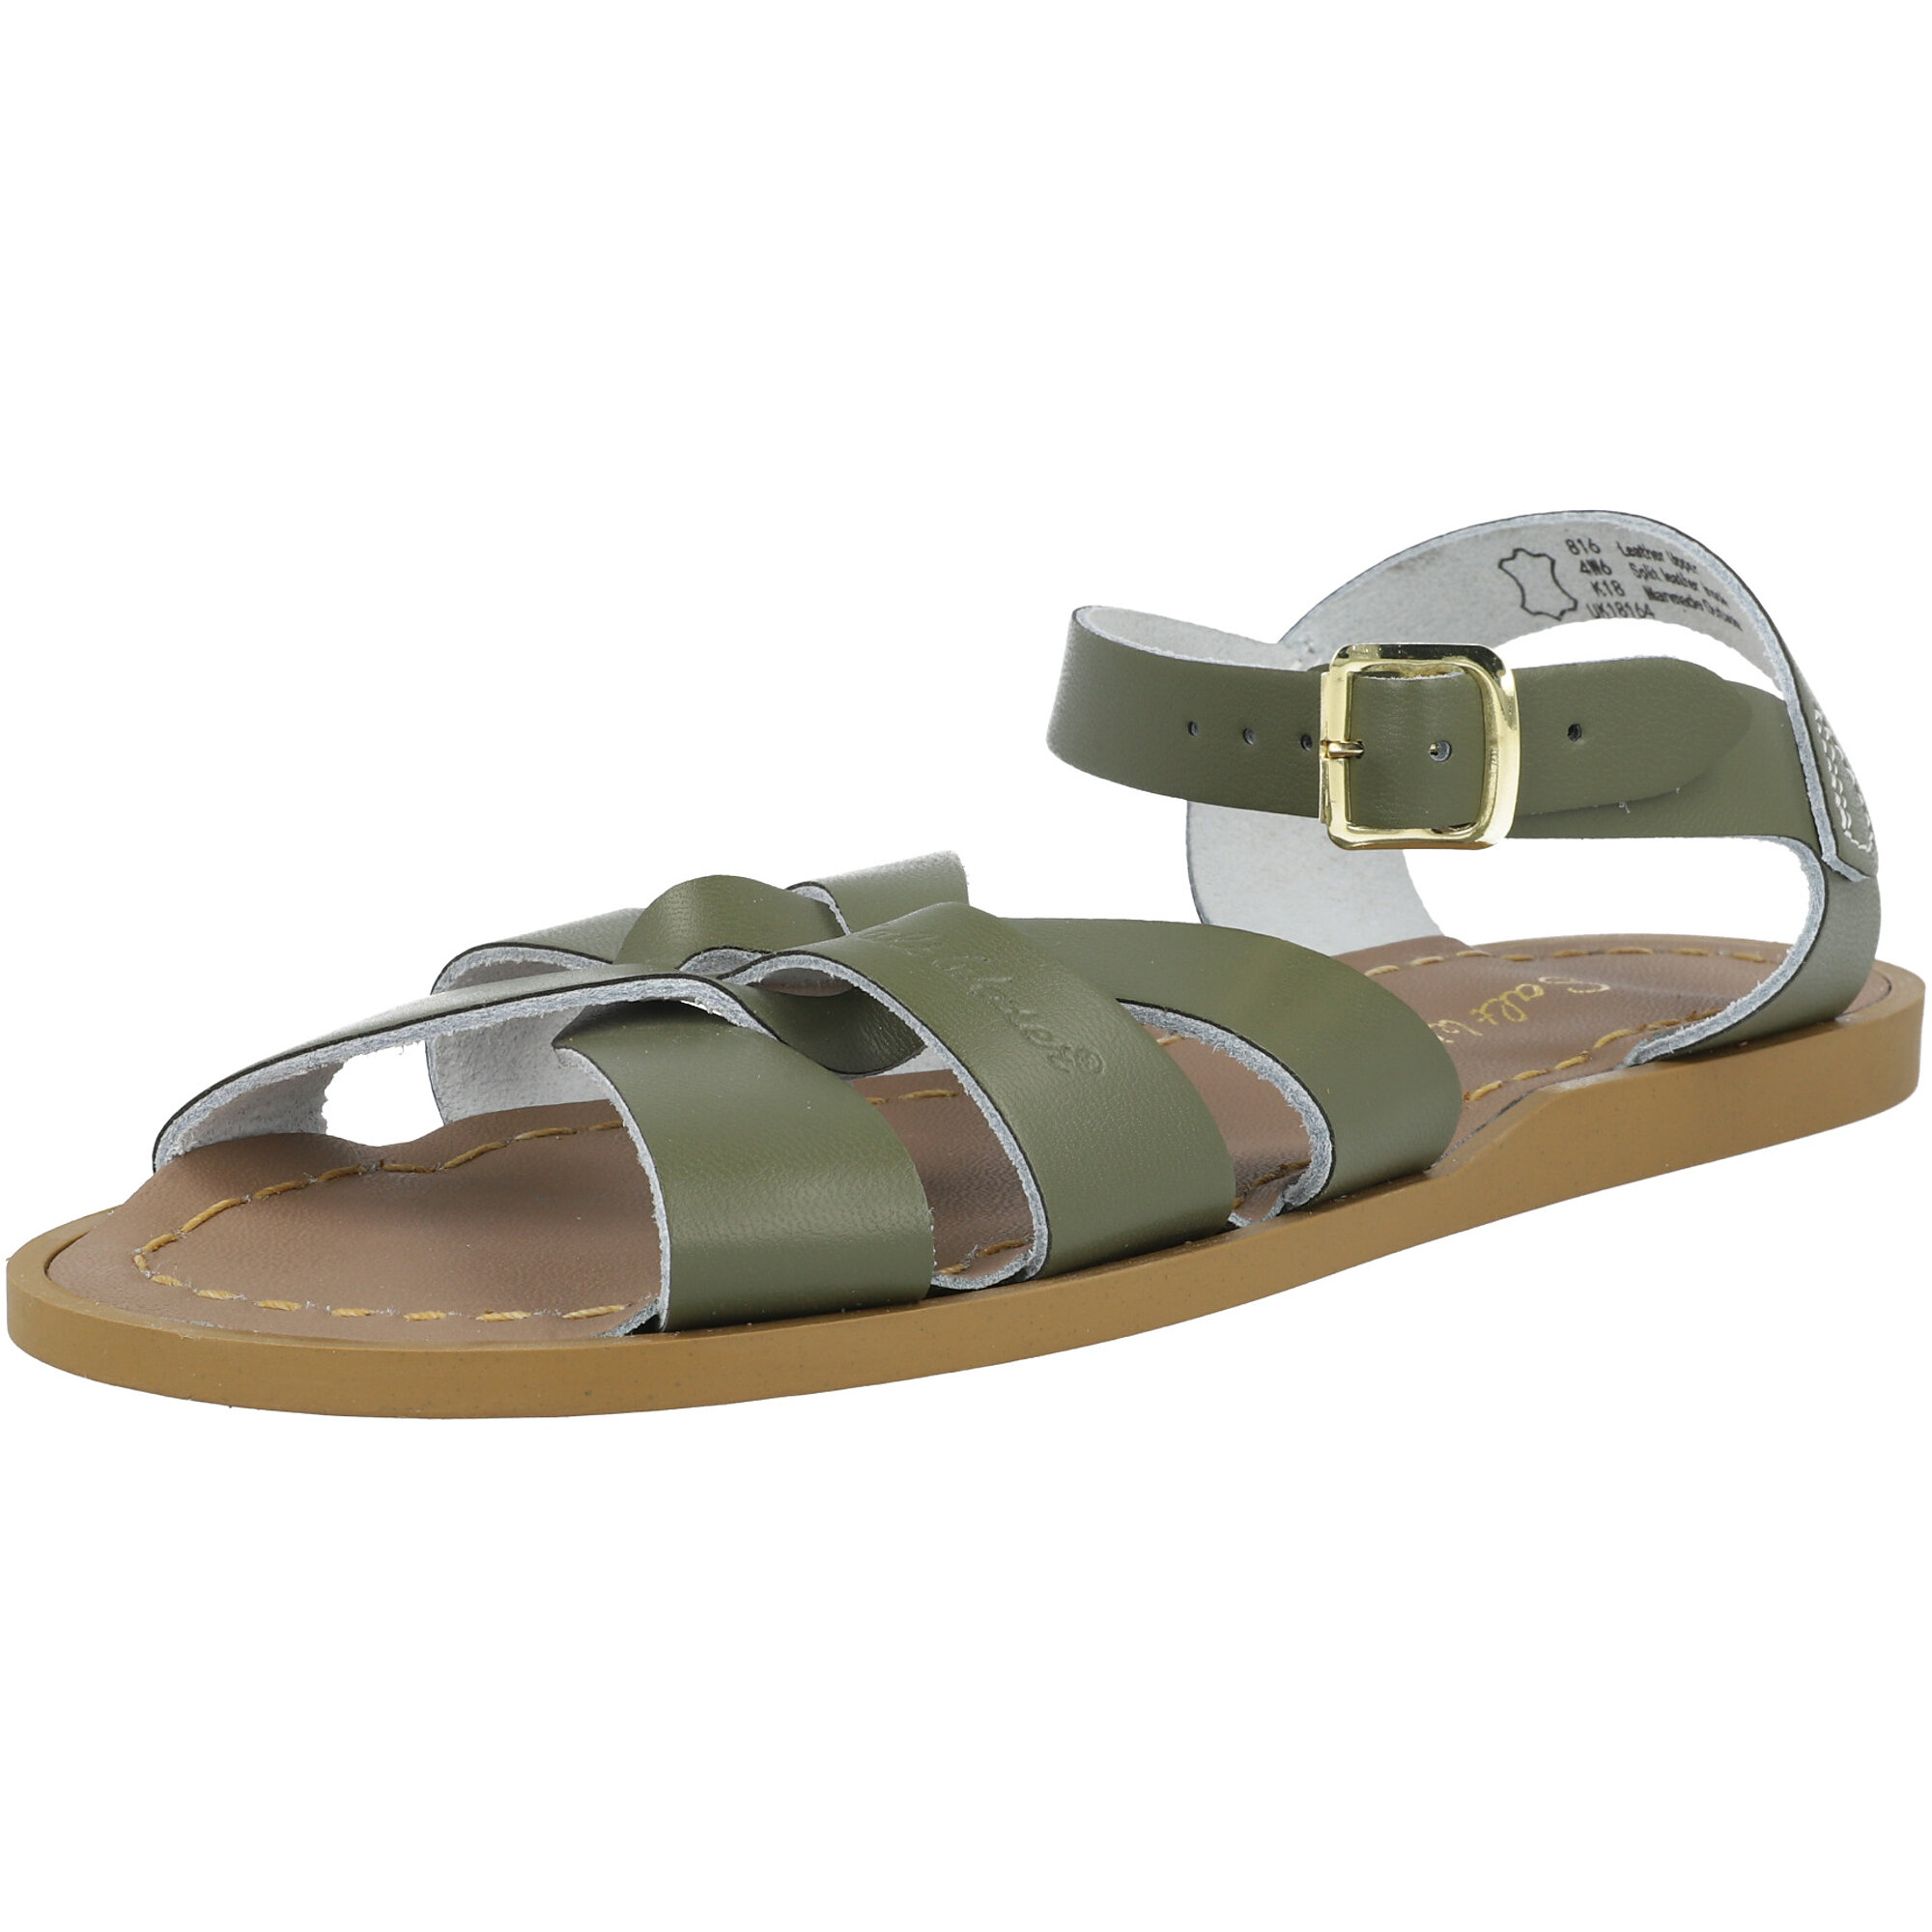 Salt Water Sandals Original Olive Leather